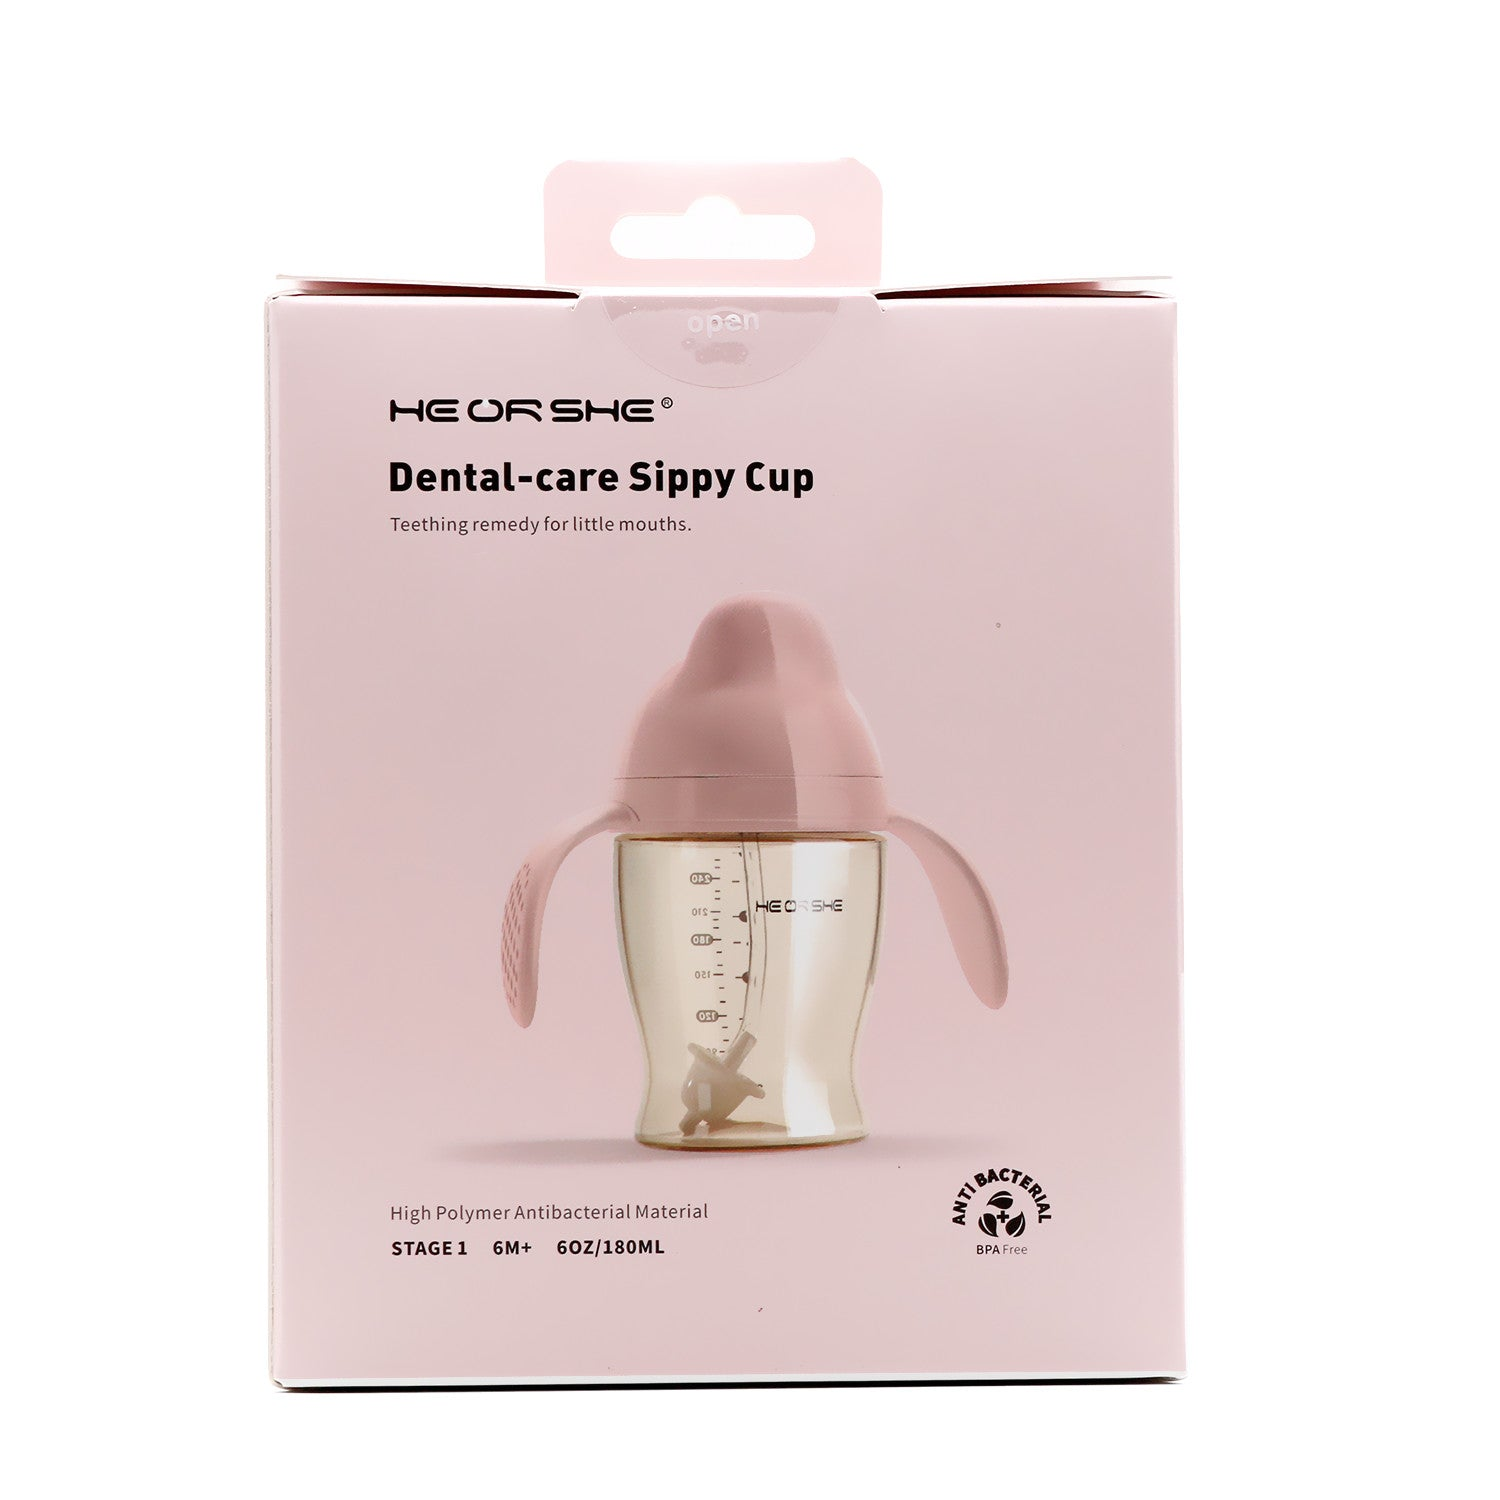 Heorshe Dental-Care Sippy Cup Stage 1 (6 months+)